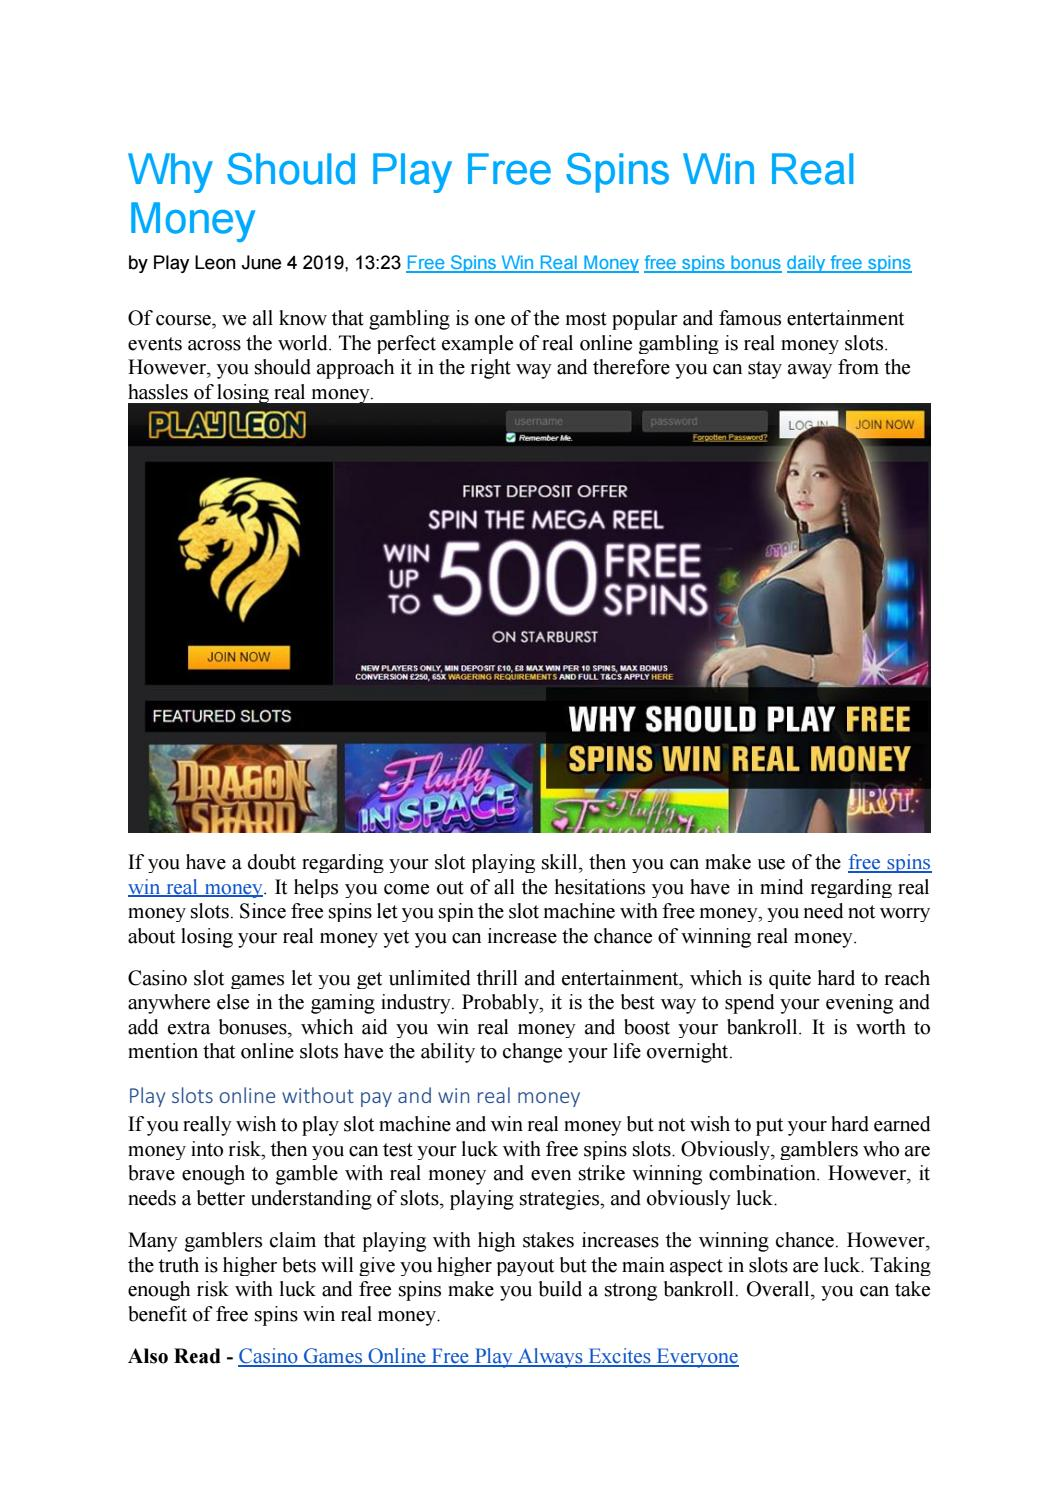 Why Should Play Free Spins Win Real Money By Playleon Issuu